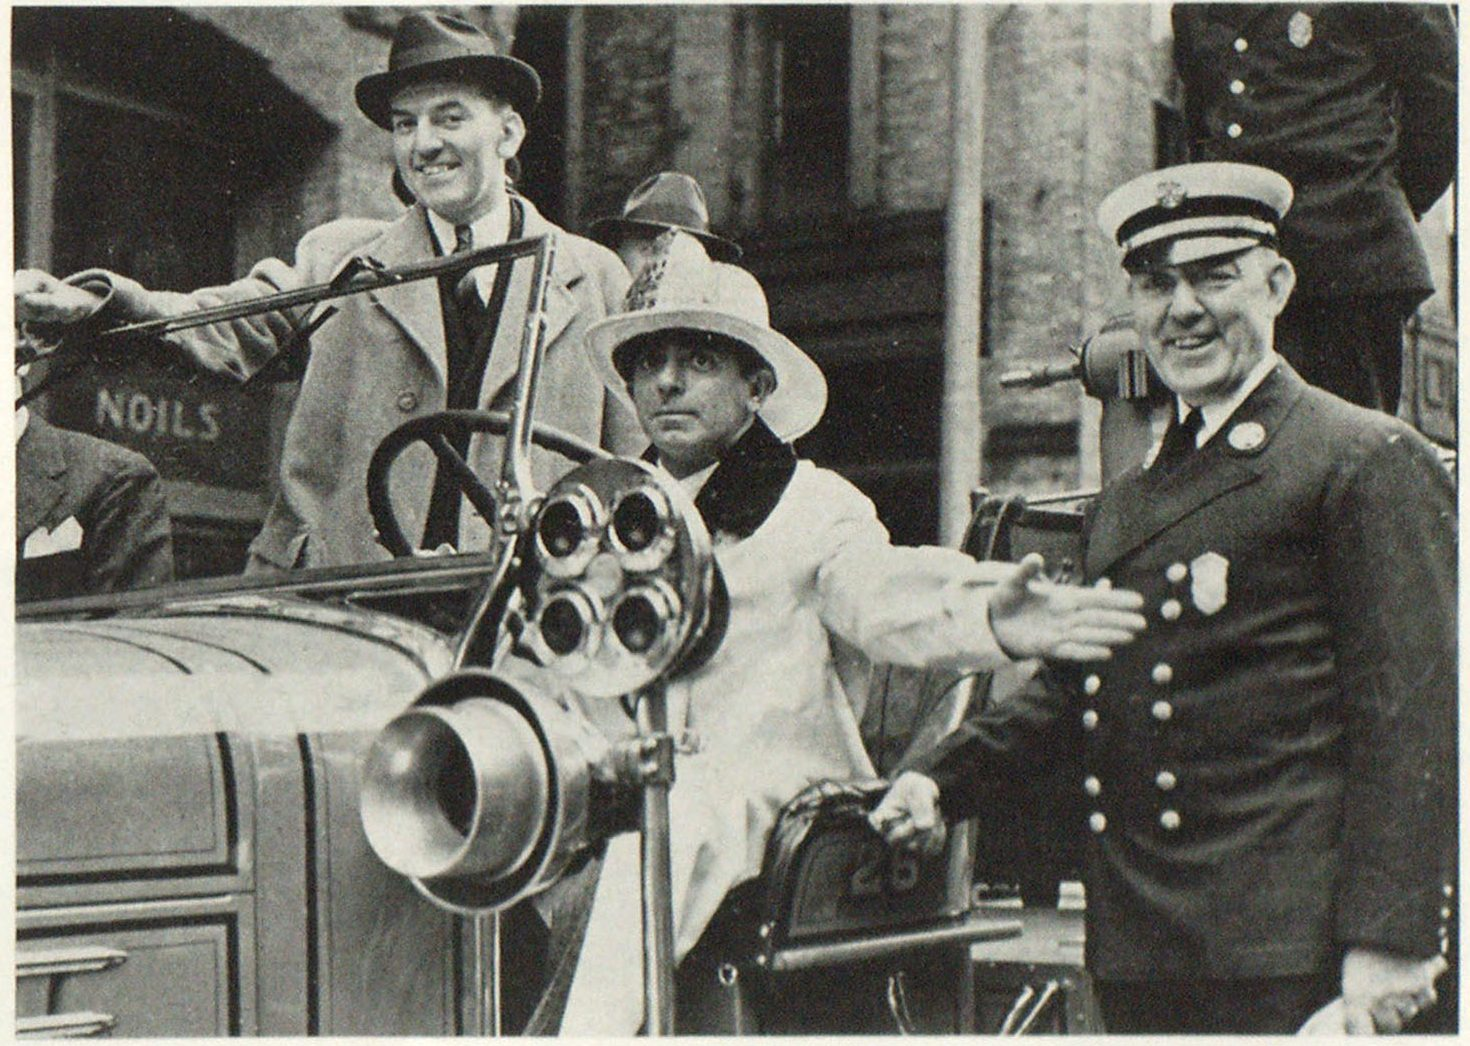 In the Interest of Fire Prevention Fire Commissioner William A. Rielly, Chief Samuel Pope, Boston, Mass., and Eddie Cantor, Motion Picture and Radio Comedian, take part in Boston's Fire Prevention Day Program.